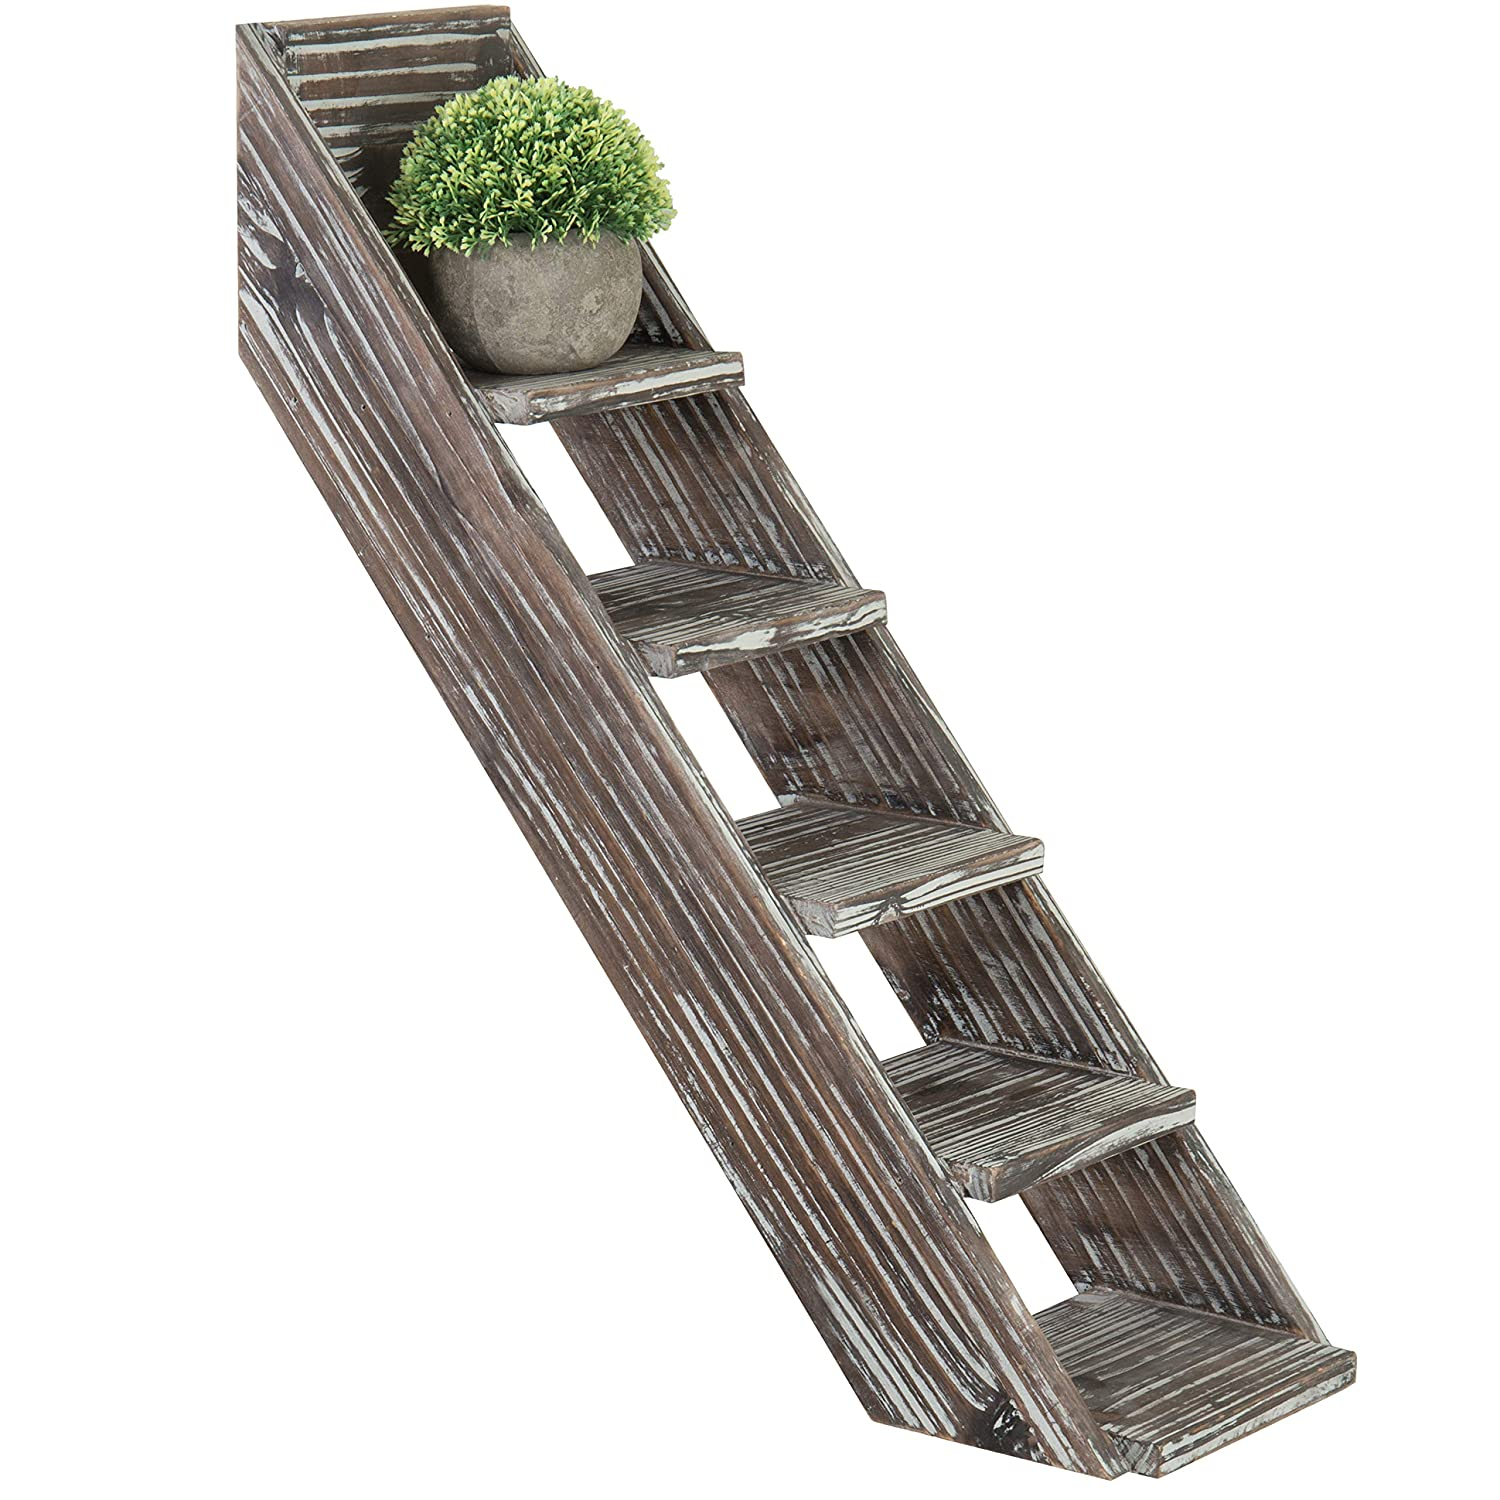 MyGift Torched Wood 5-Tier Wall-Mounted Staircase Shelf